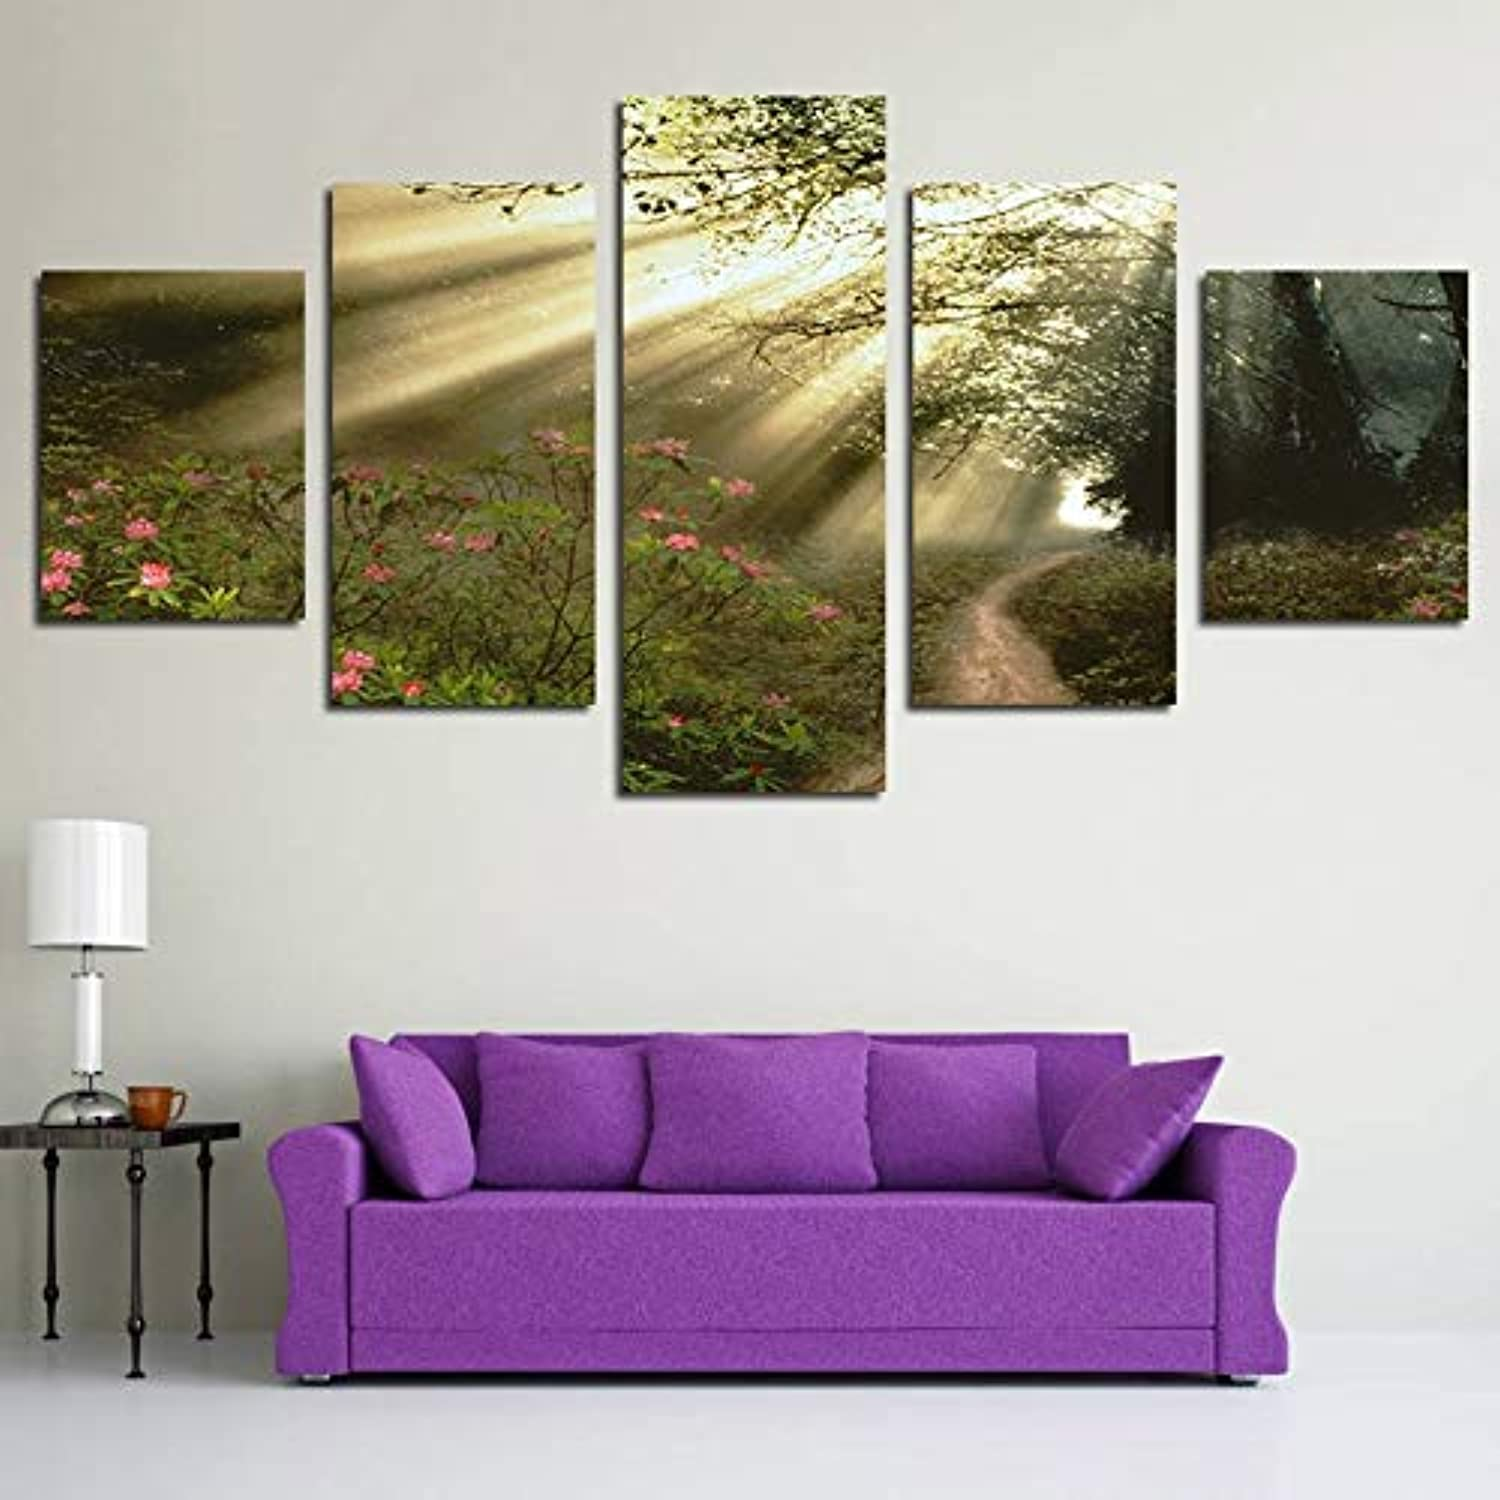 Living Room HD Printed Modern Wall Painting 5 Piece Pcs Forest Landscape Modular Picture Home Decor Poster Frame On Canvas